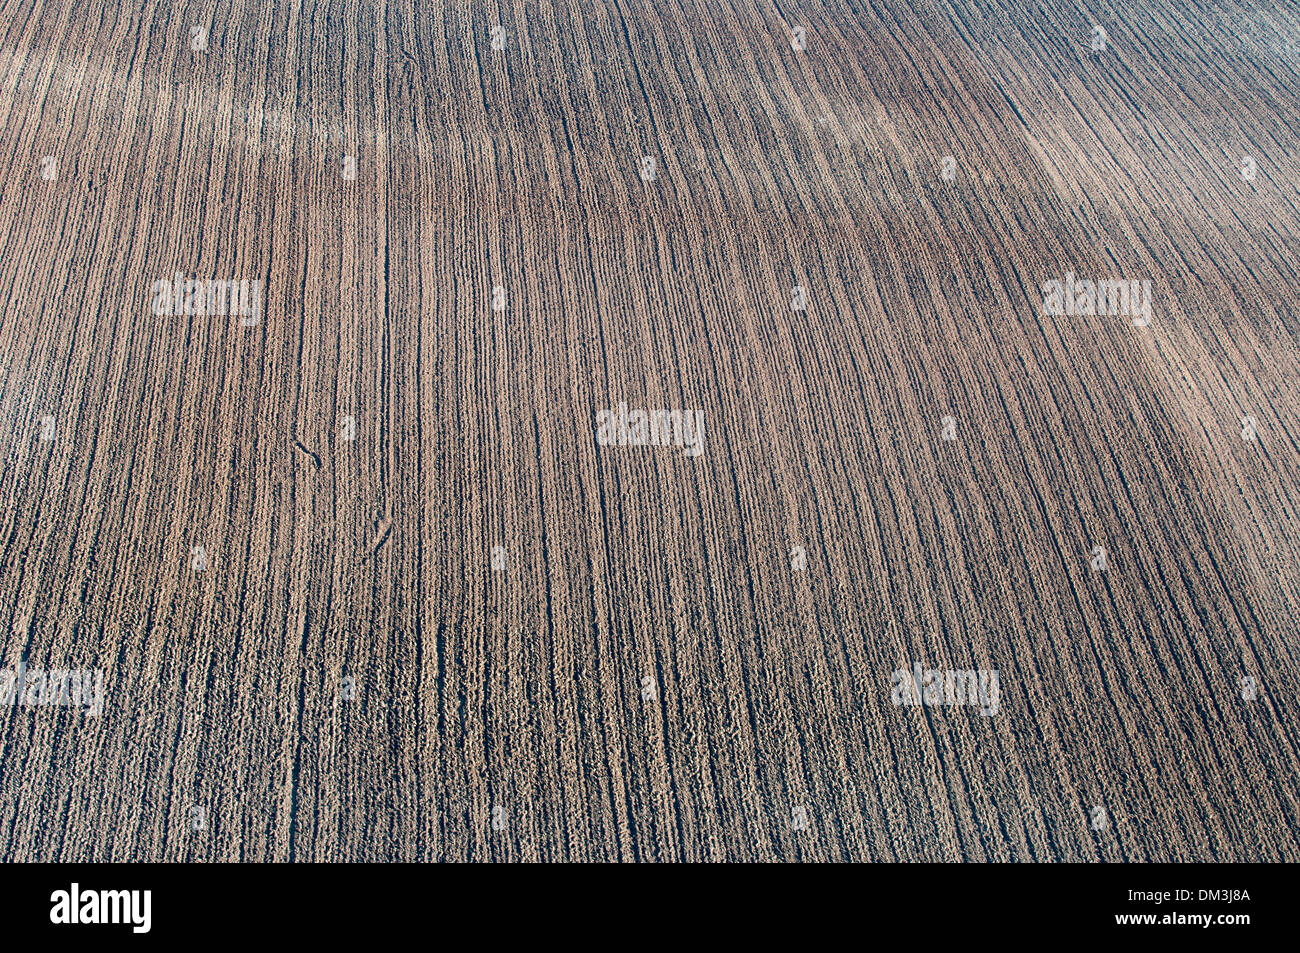 Field, field, broke, aerial, agriculture, trees - Stock Image